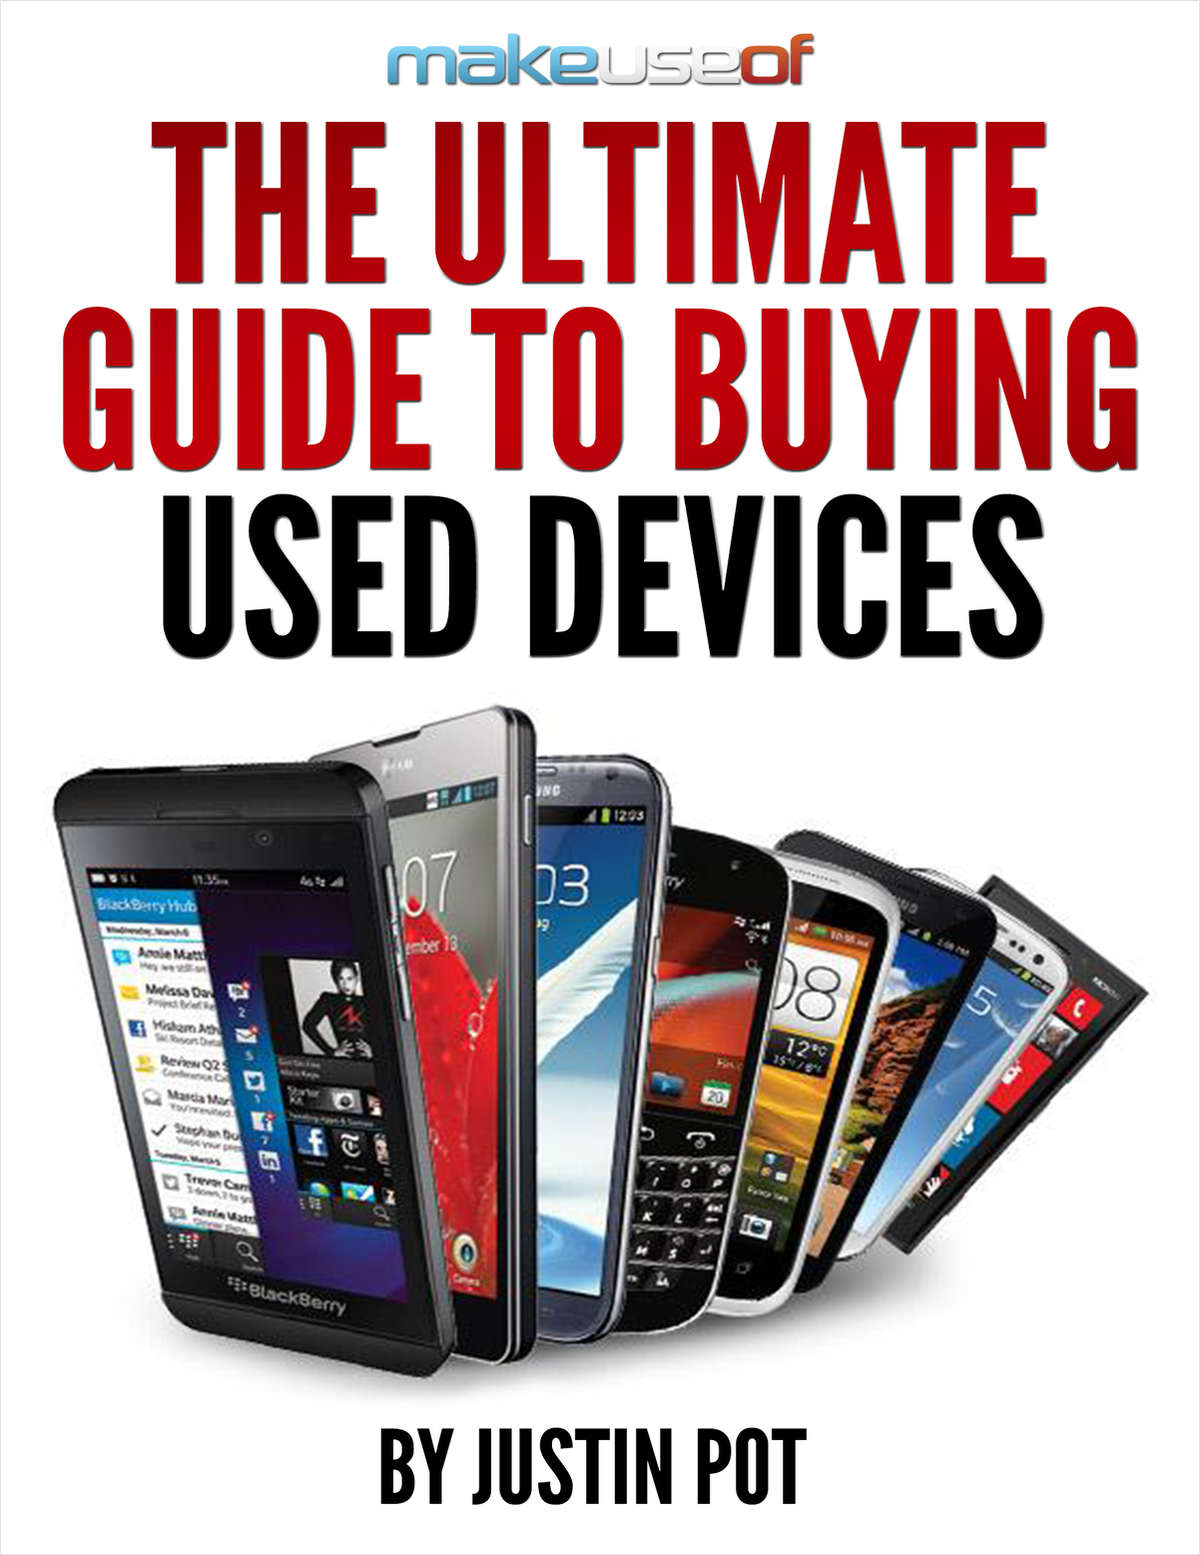 The Ultimate Guide to Buying Used Devices